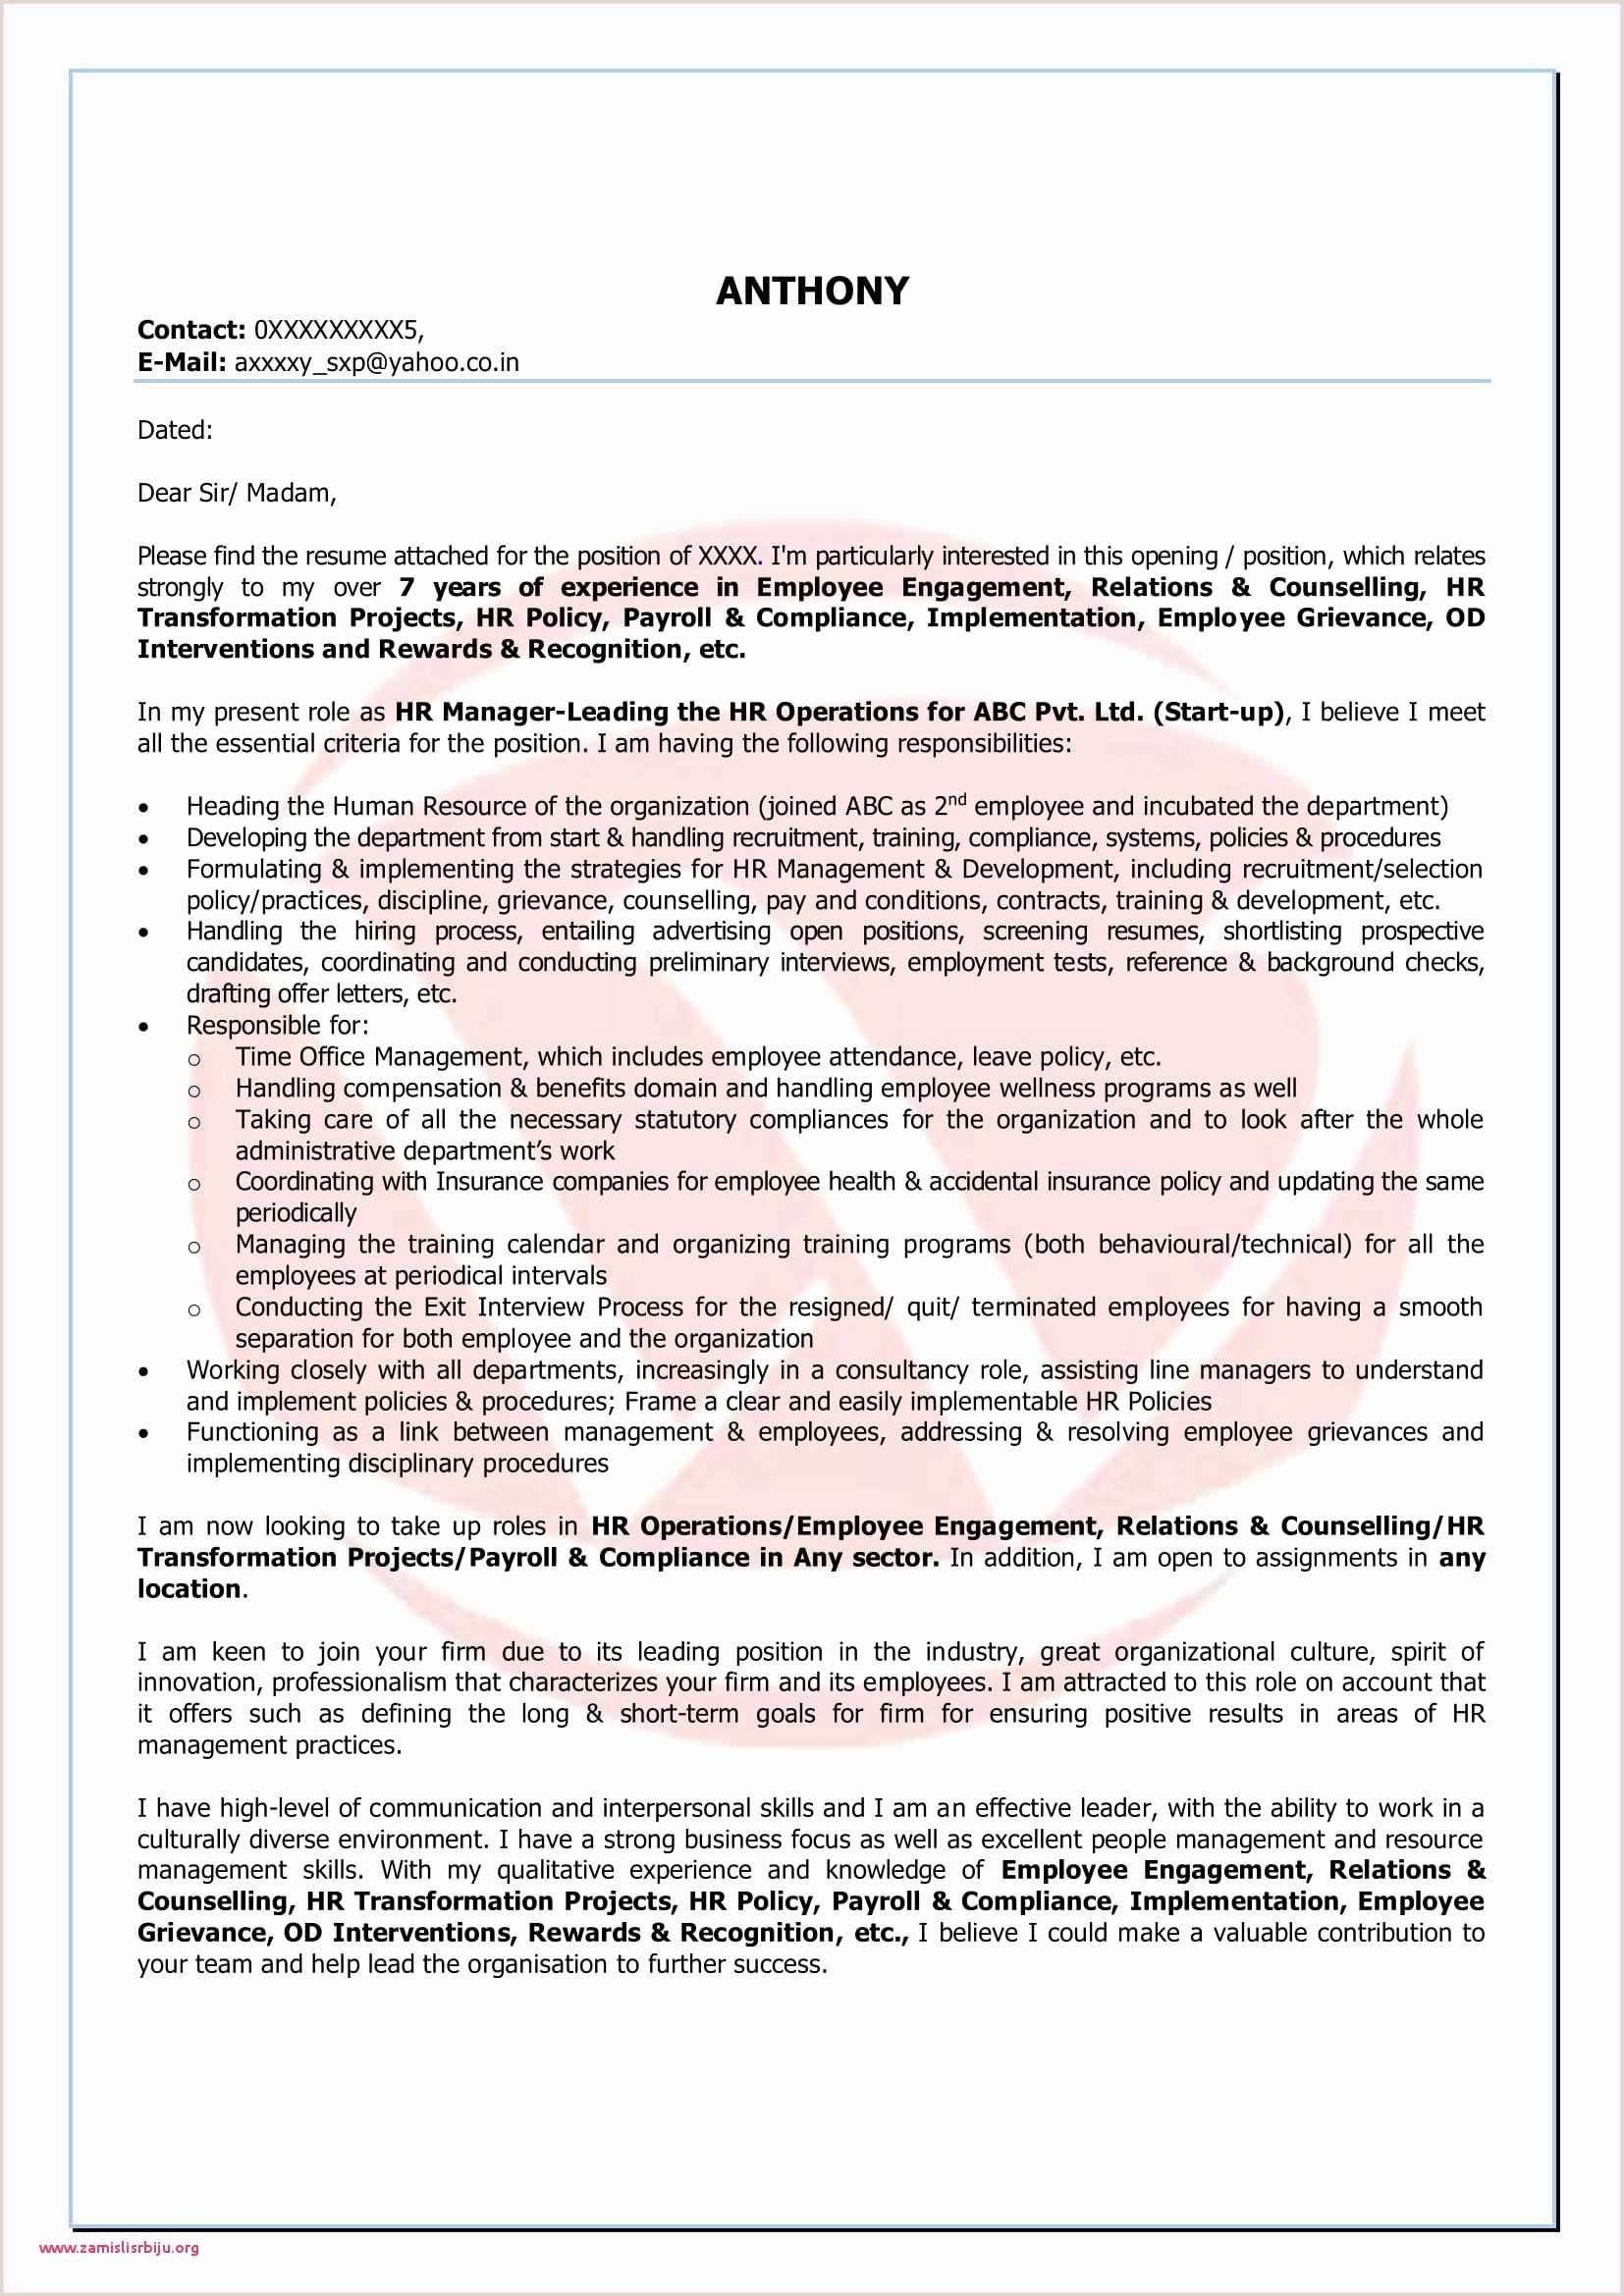 Cover Letter Referred by Friend 70 Professionnel Modelos De Cv